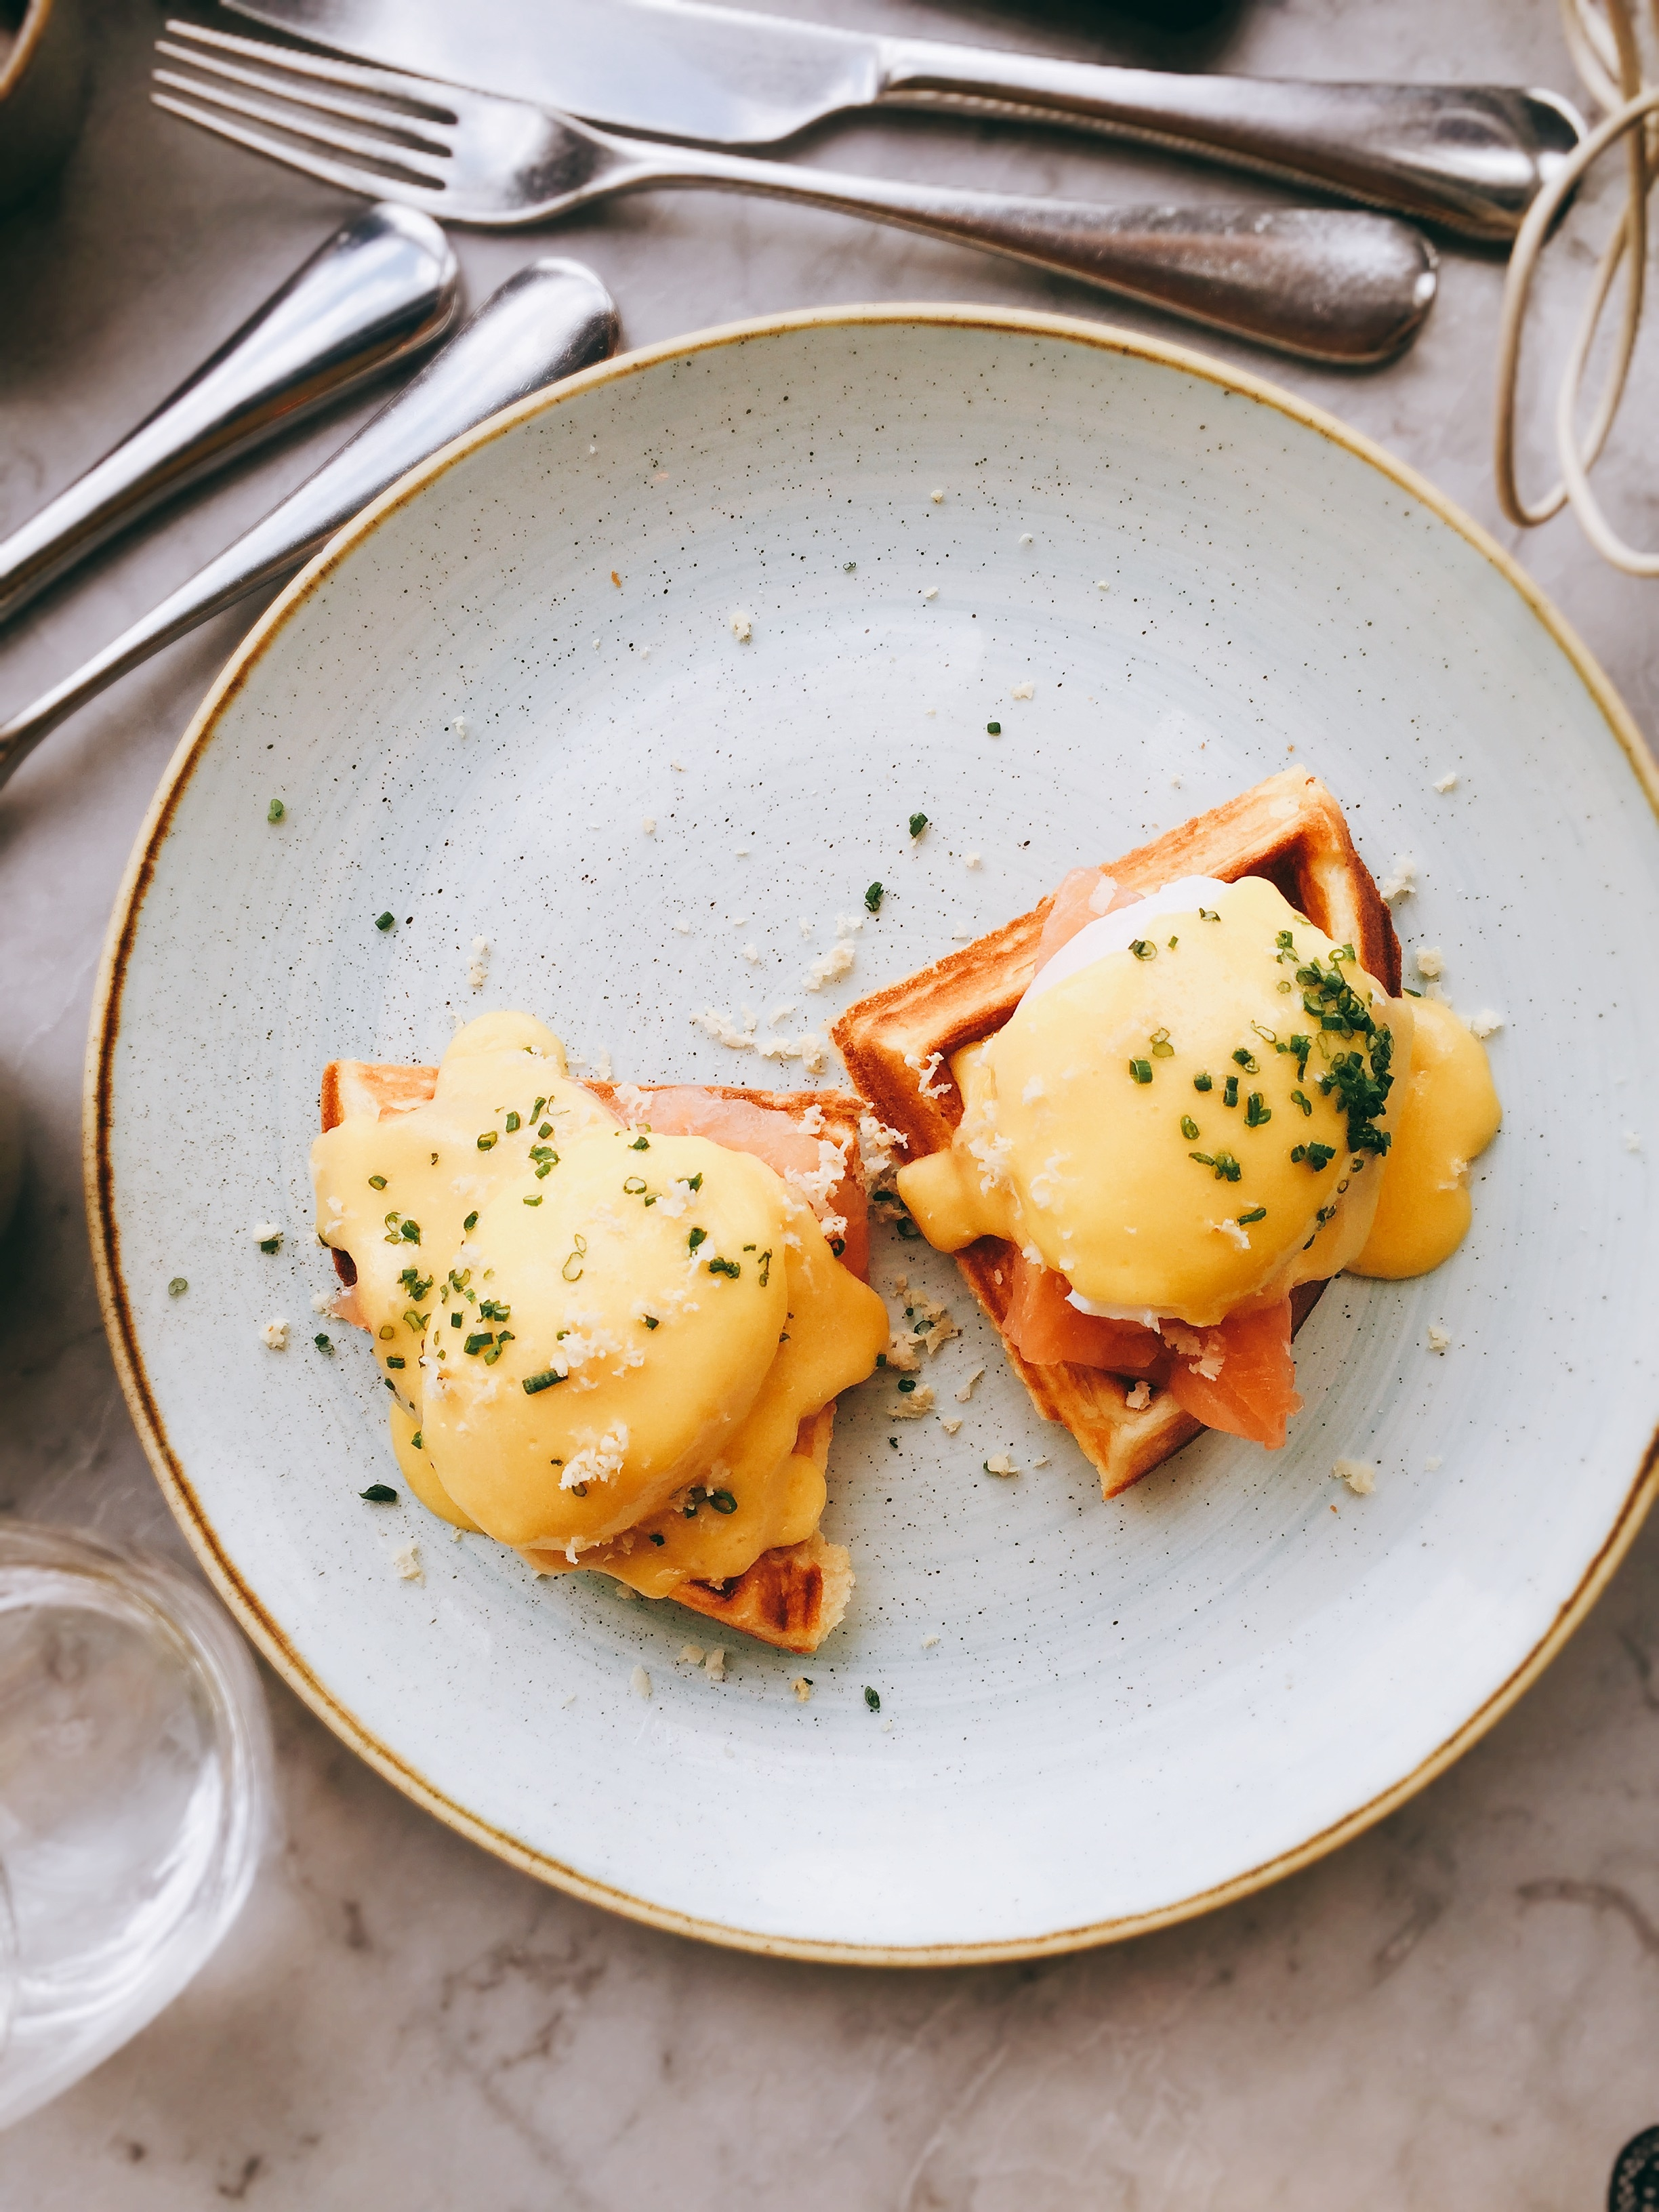 Brunch - Duck and Waffle restaurant review